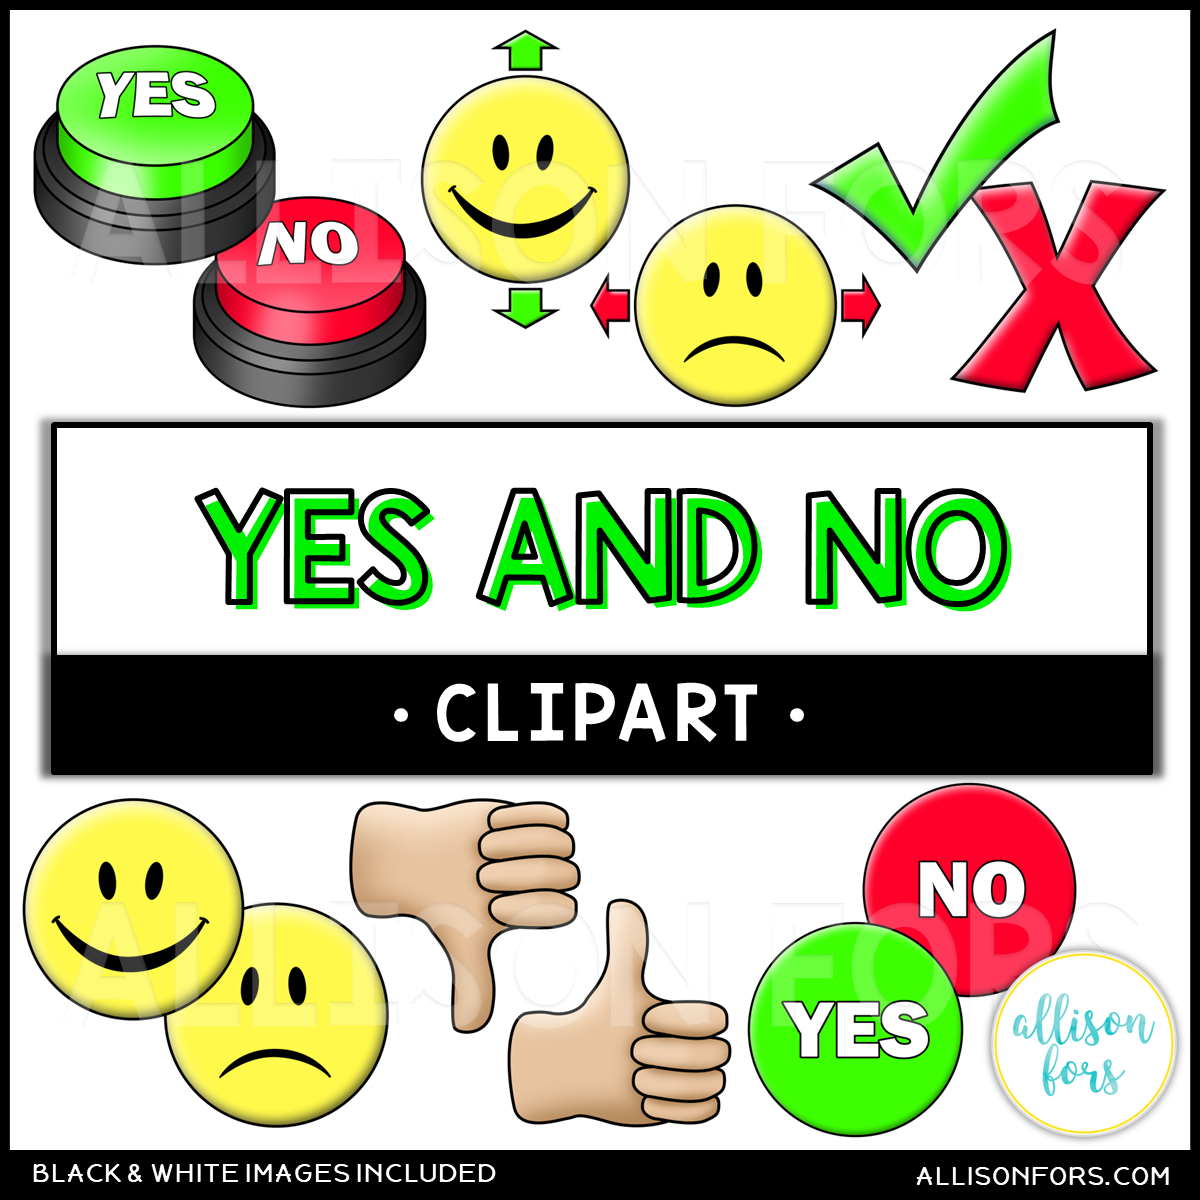 hight resolution of yes and no clipart for educational resources use as visuals in speech therapy or special education classrooms includes head nod and shake thumbs up and